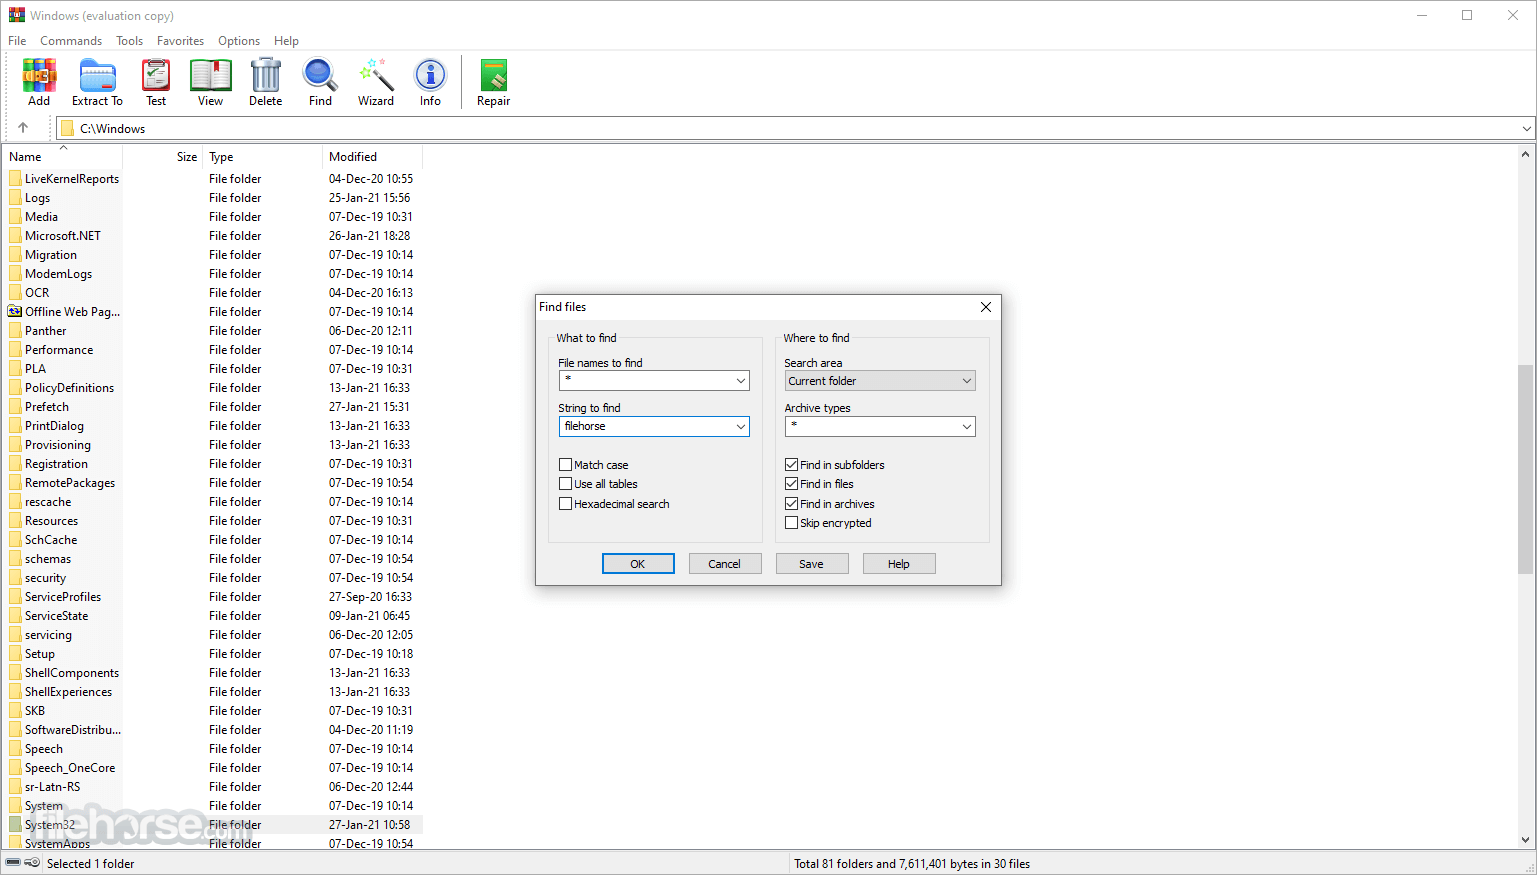 WinRAR 5.50 Beta 5 (32-bit) Screenshot 3